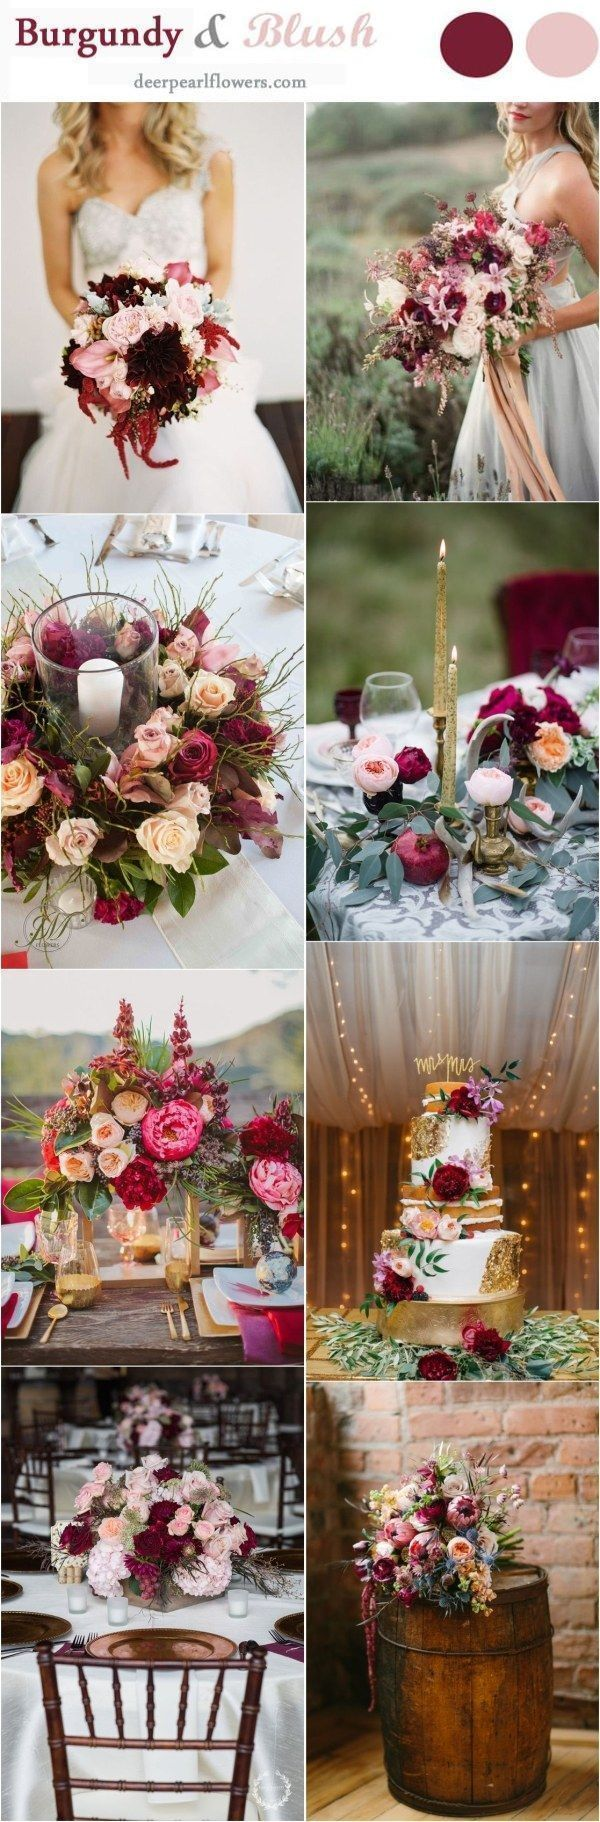 Burgundy and Blush Fall Wedding Color Ideas / http://www.deerpearlflowers.com/burgundy-and-blush-fall-wedding-ideas/ #Weddingscolors #weddingideas #weddingcolors